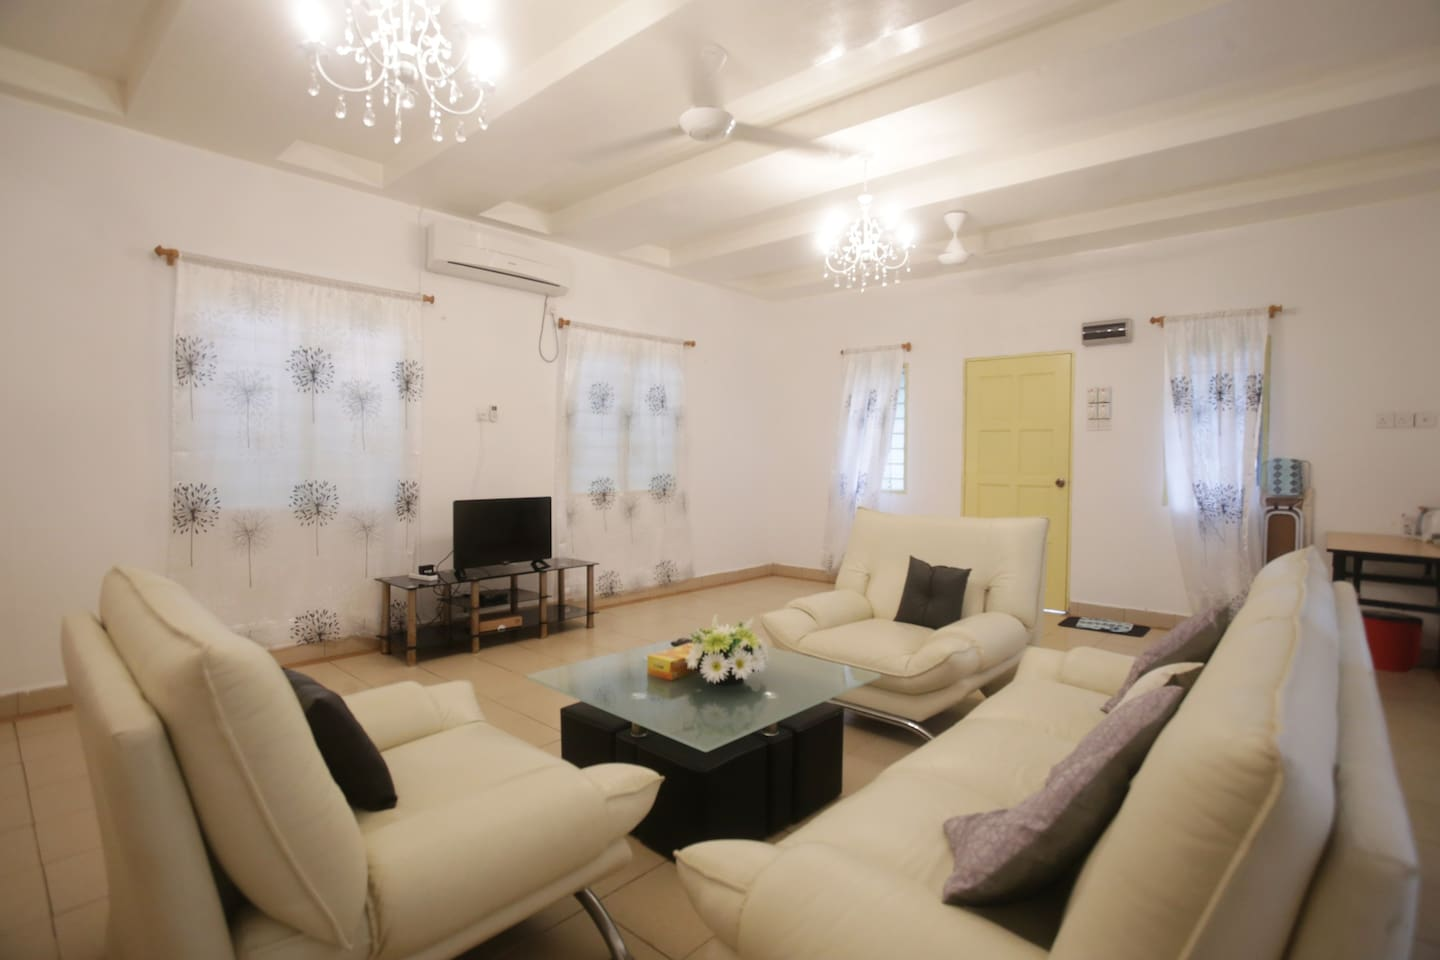 Modern amenities with comfortable sofa, air-conditioned, LED TV